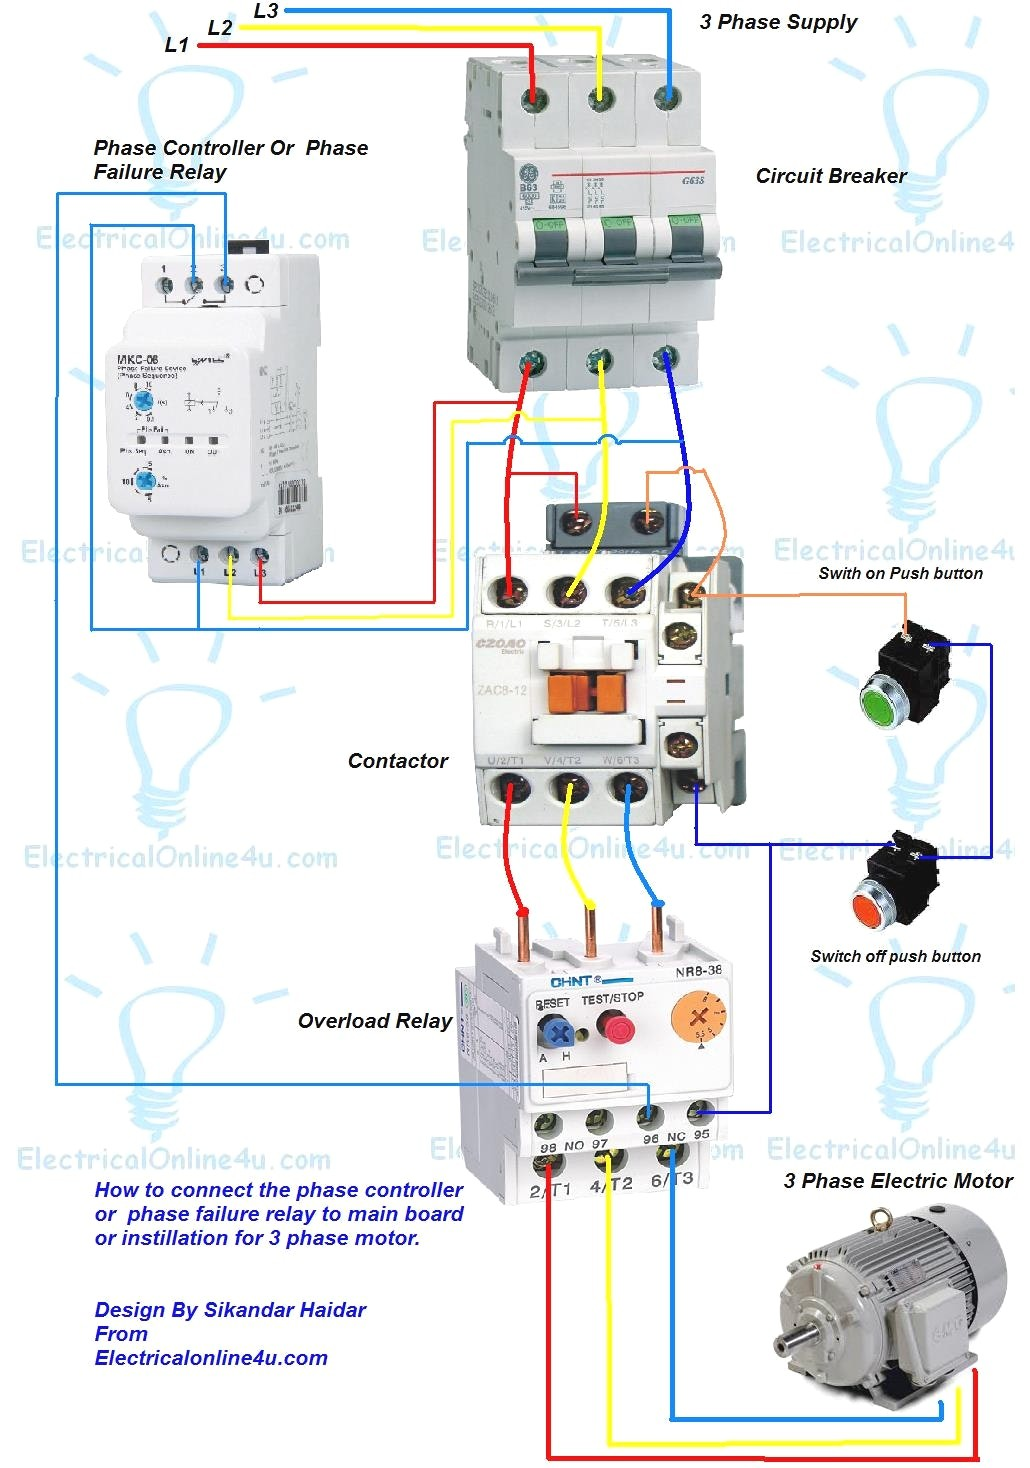 Ae 8121 Magnetic Contactor 1 Pole Relay Wiring Wiring Diagram